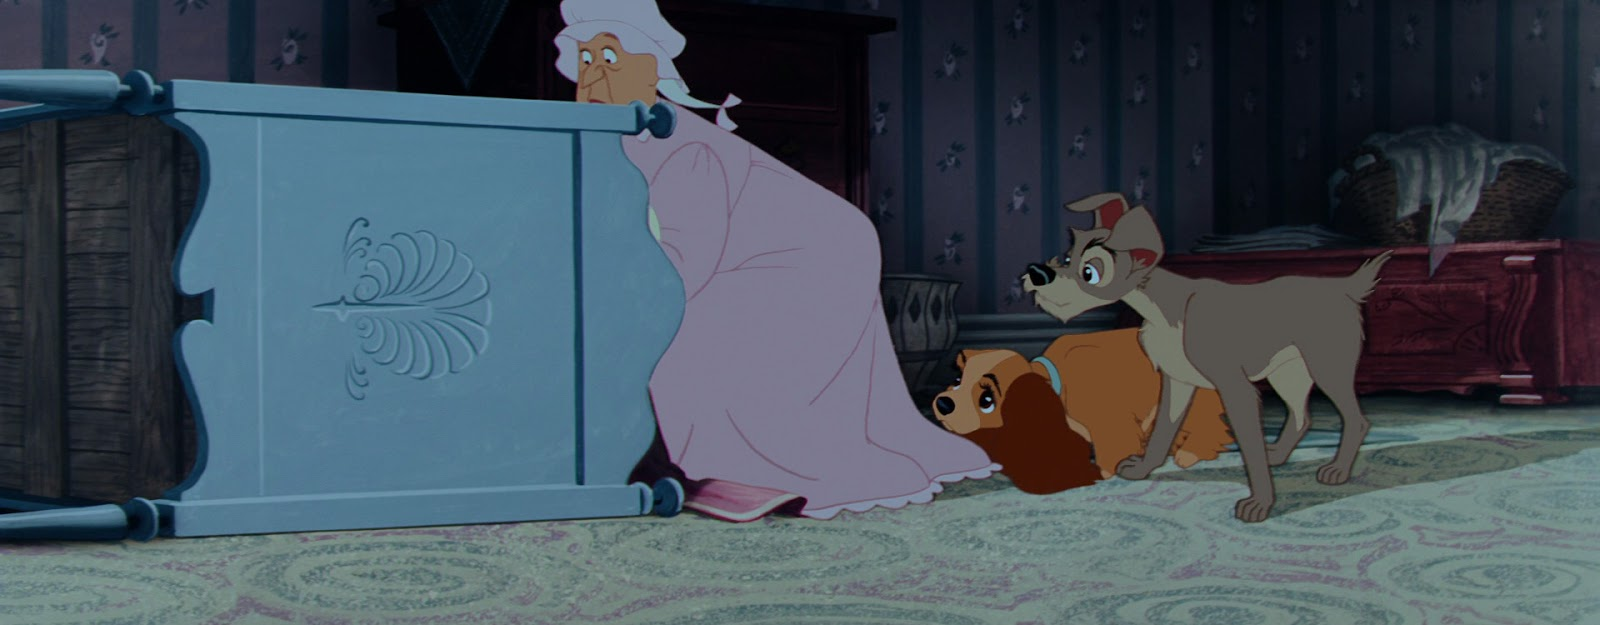 Authorquest Analyzing The Disney Villains Aunt Sarah Lady And The Tramp